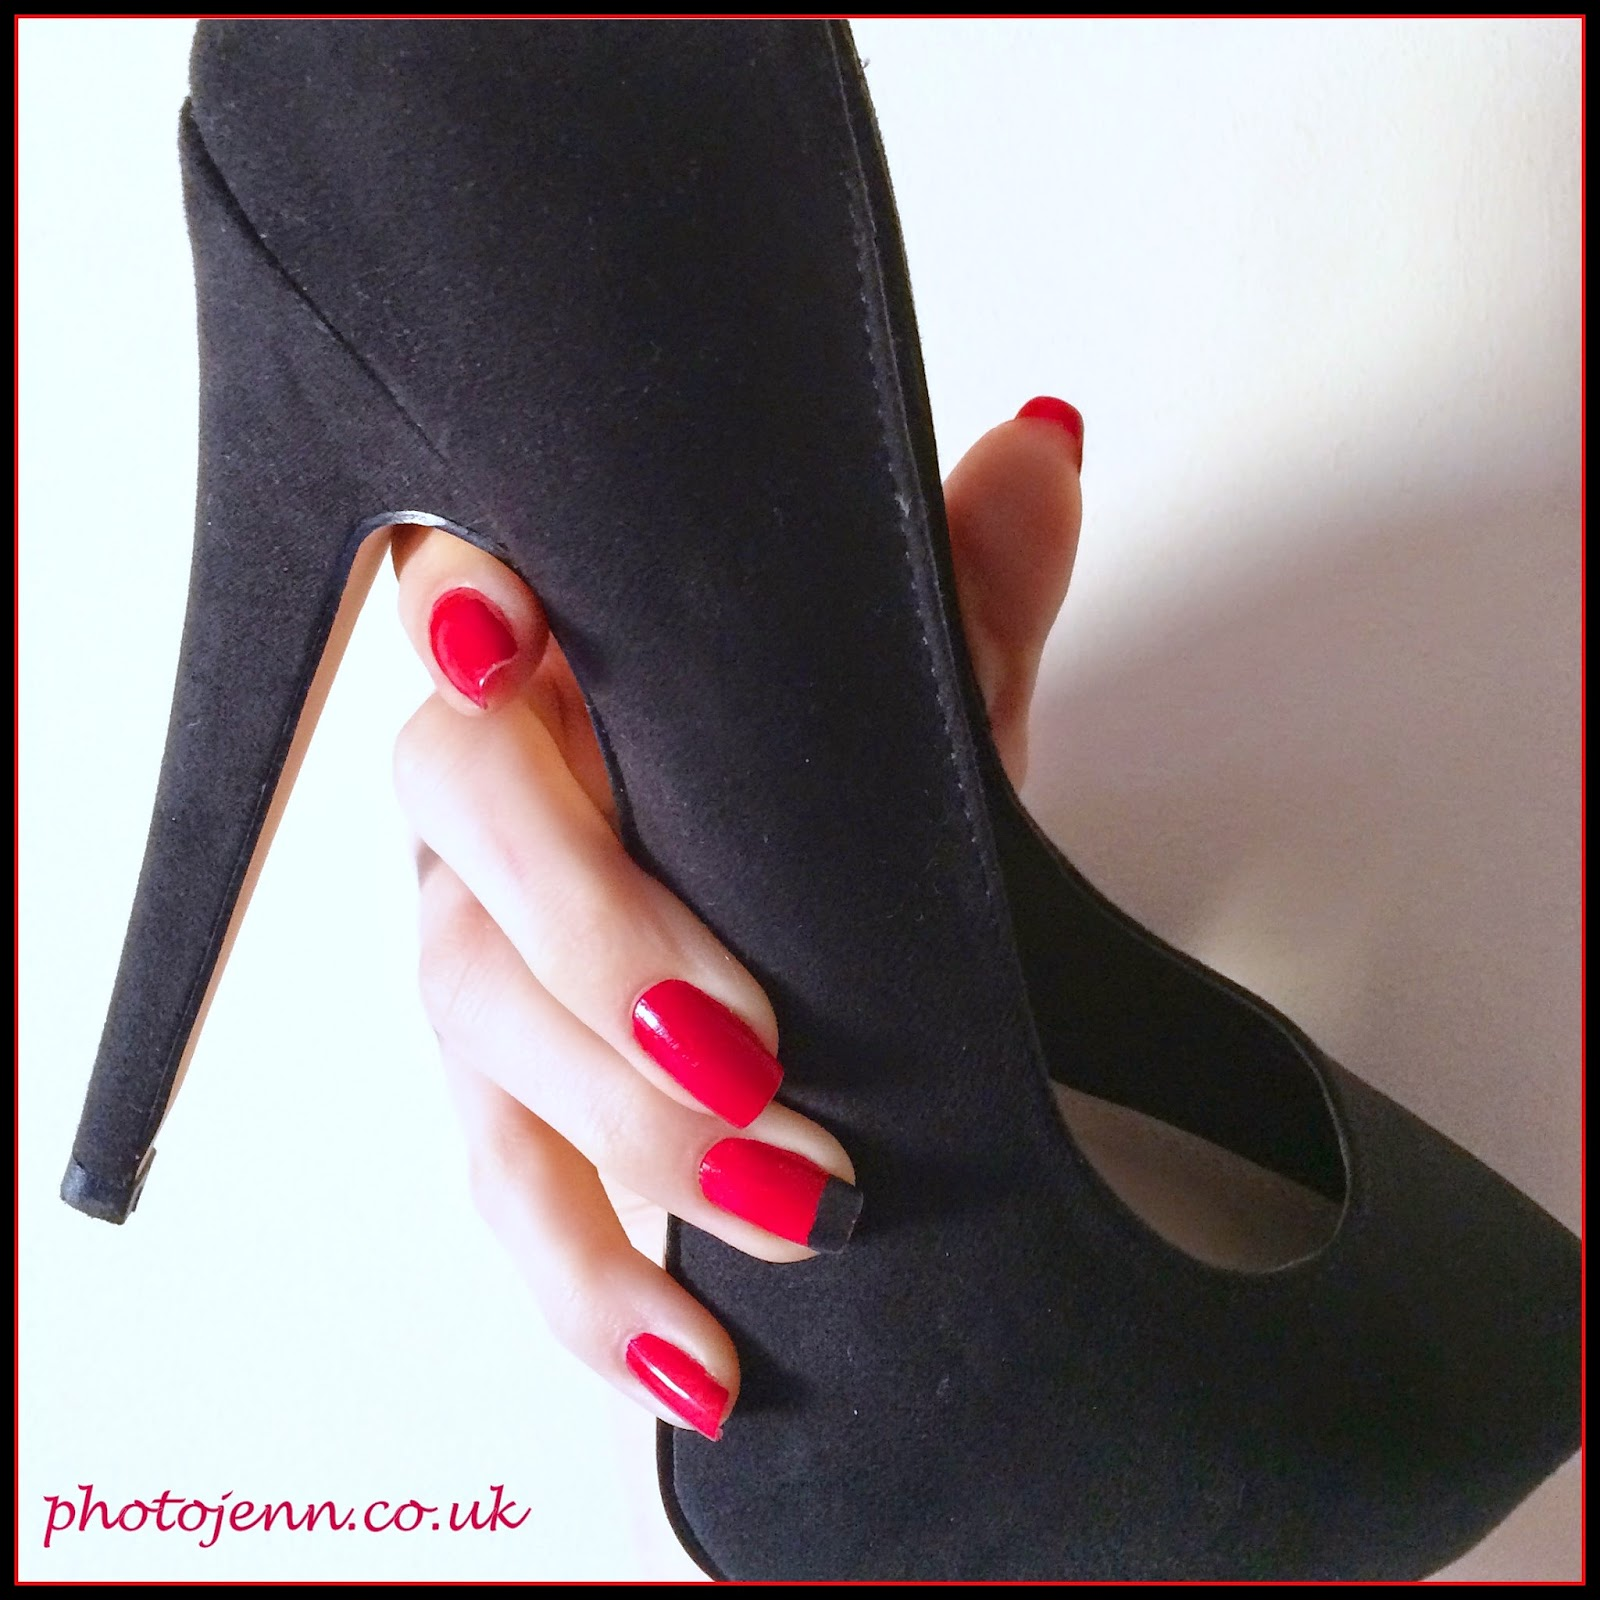 christian-louboutin-carvela-nails-heels-shoes